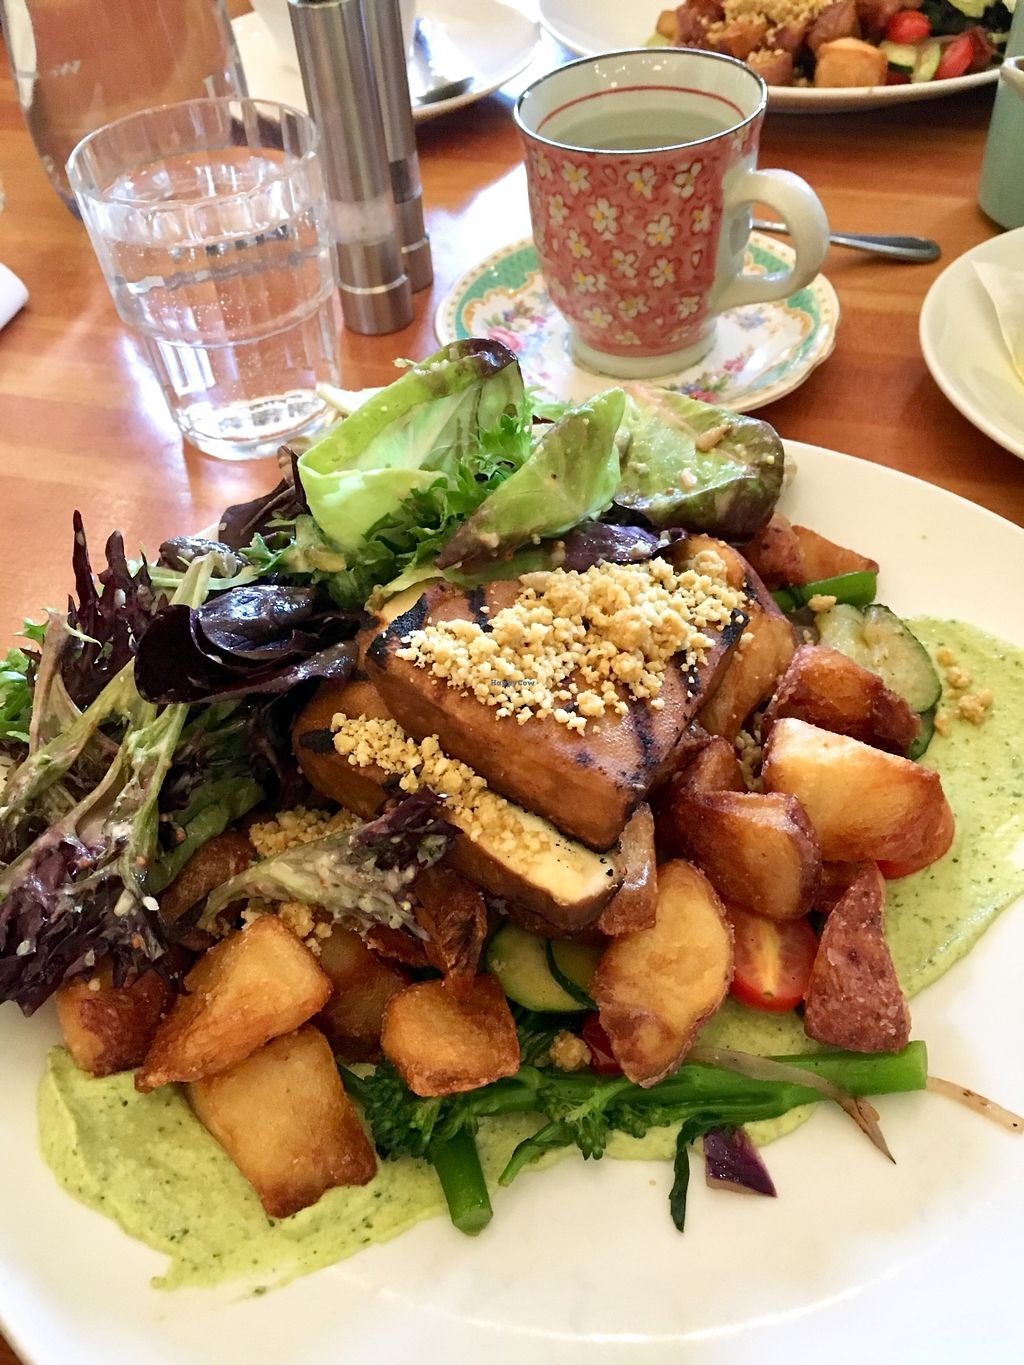 """Photo of Heirloom Vegetarian  by <a href=""""/members/profile/vegan%20frog"""">vegan frog</a> <br/>Vegan hash <br/> April 12, 2018  - <a href='/contact/abuse/image/34325/384316'>Report</a>"""